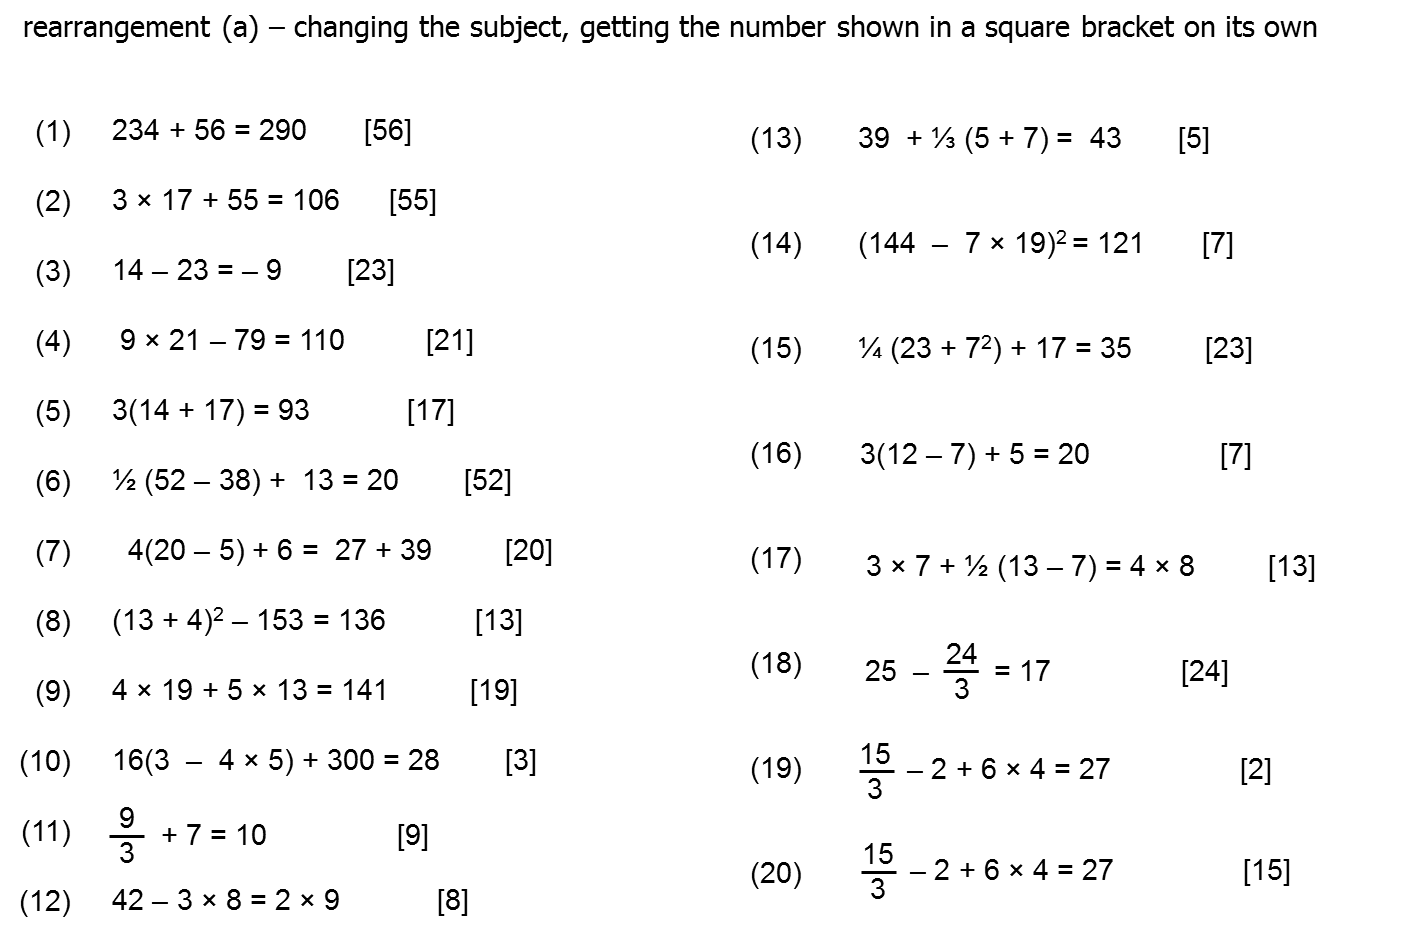 Algebra Worksheet New 230 Algebra Worksheet Brackets